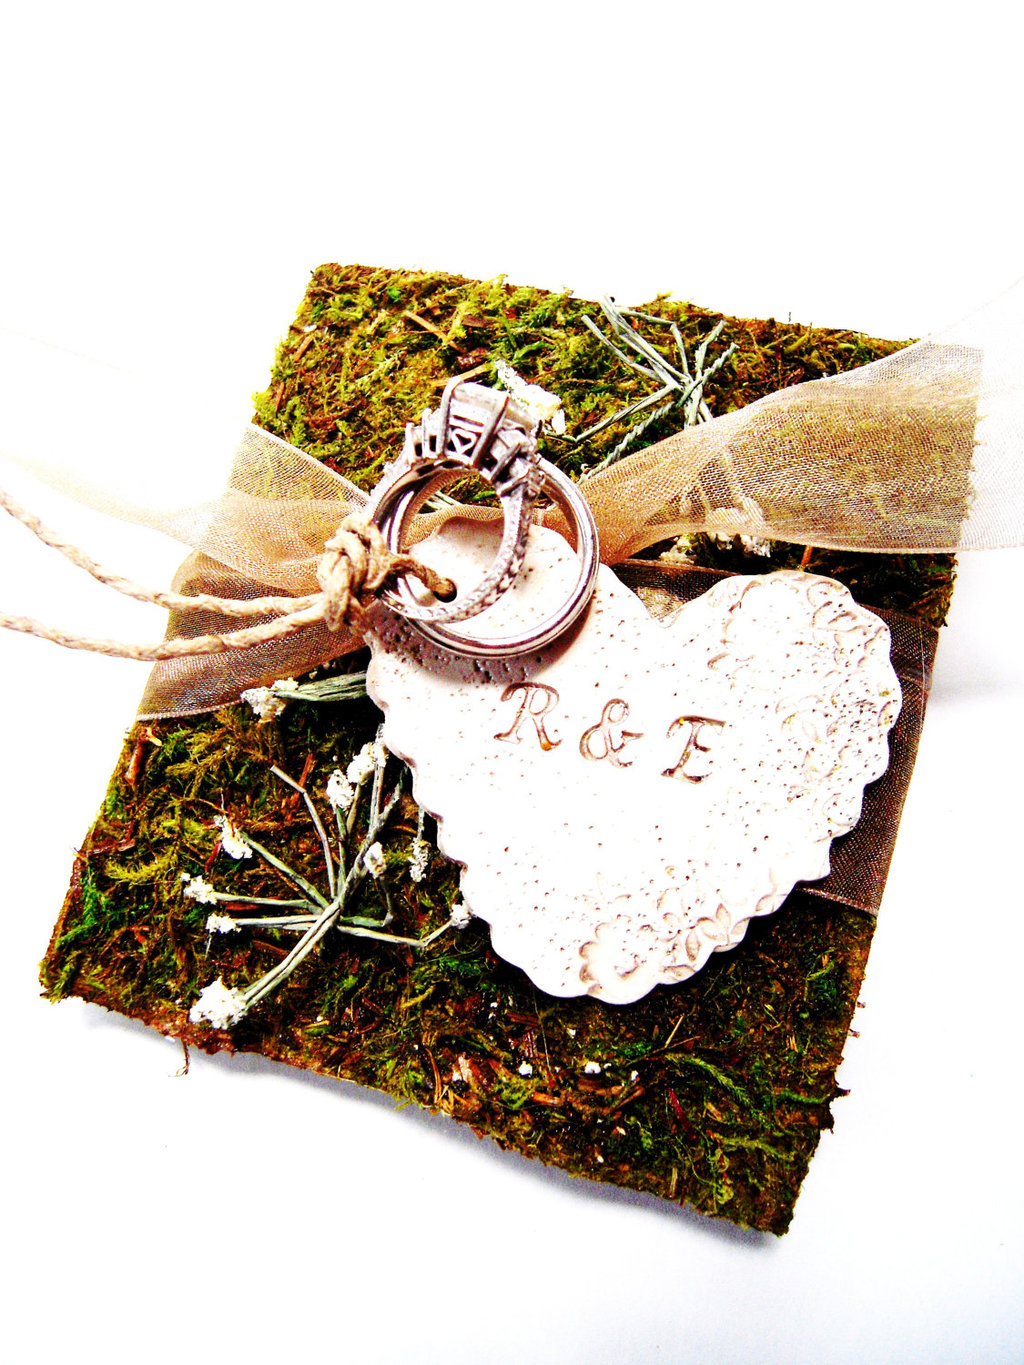 Mossy ring bearer pillow for the wedding ceremony